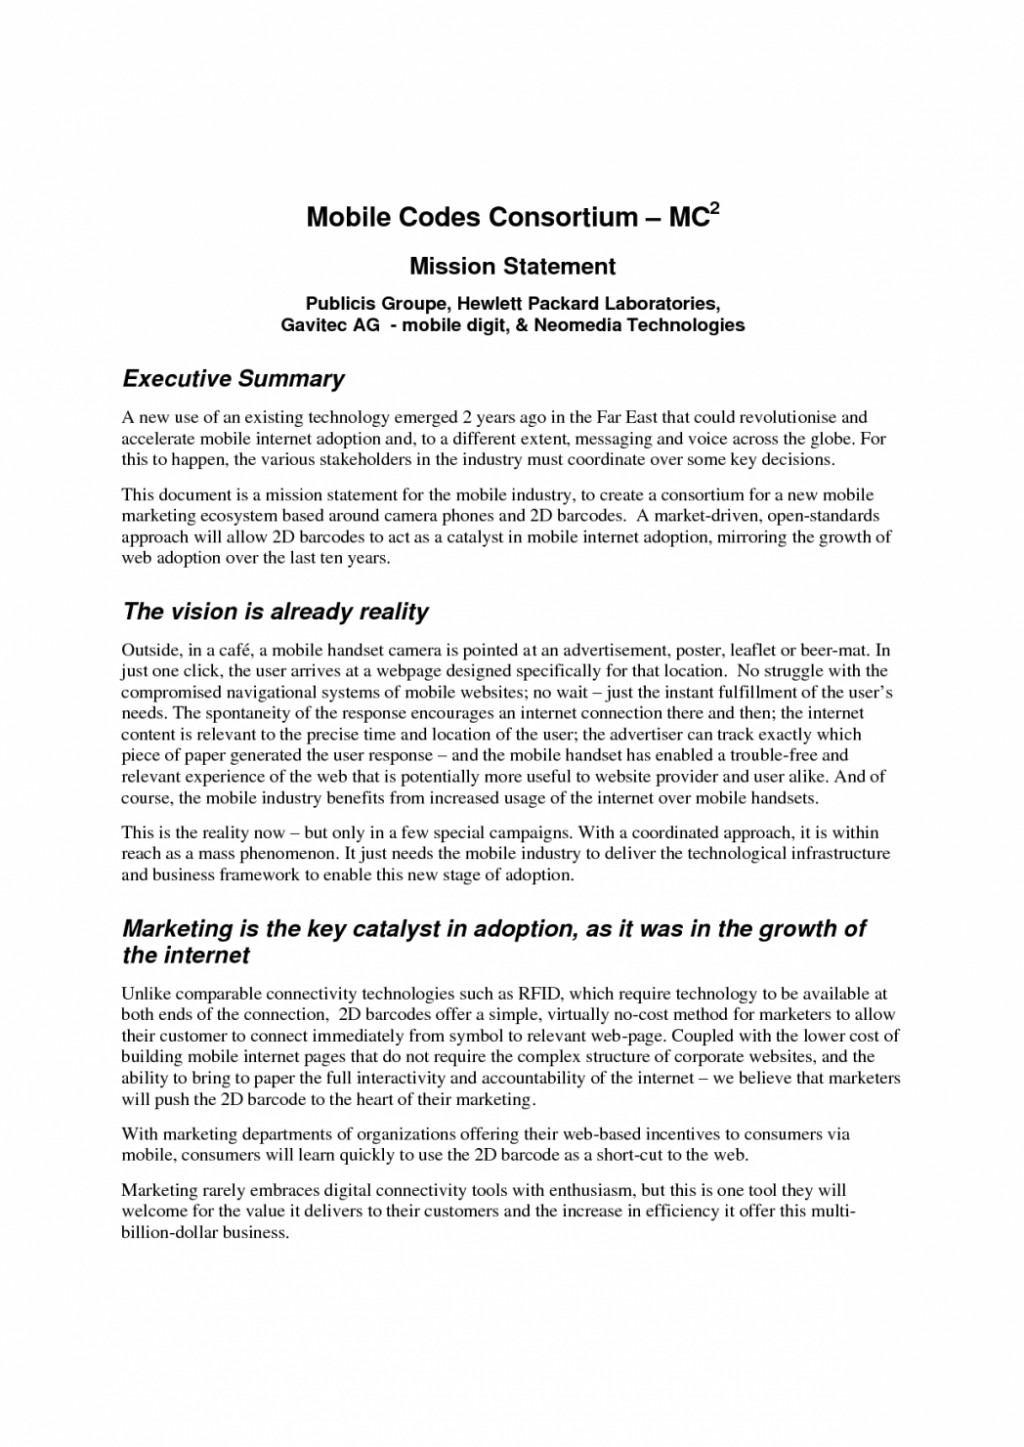 005 Argumentative Essay Capital Punishment About The Death Penalty Arguments For Disney Mission Statement Template H1t Against 1048x1481 Incredible Topics Titles Pdf Large